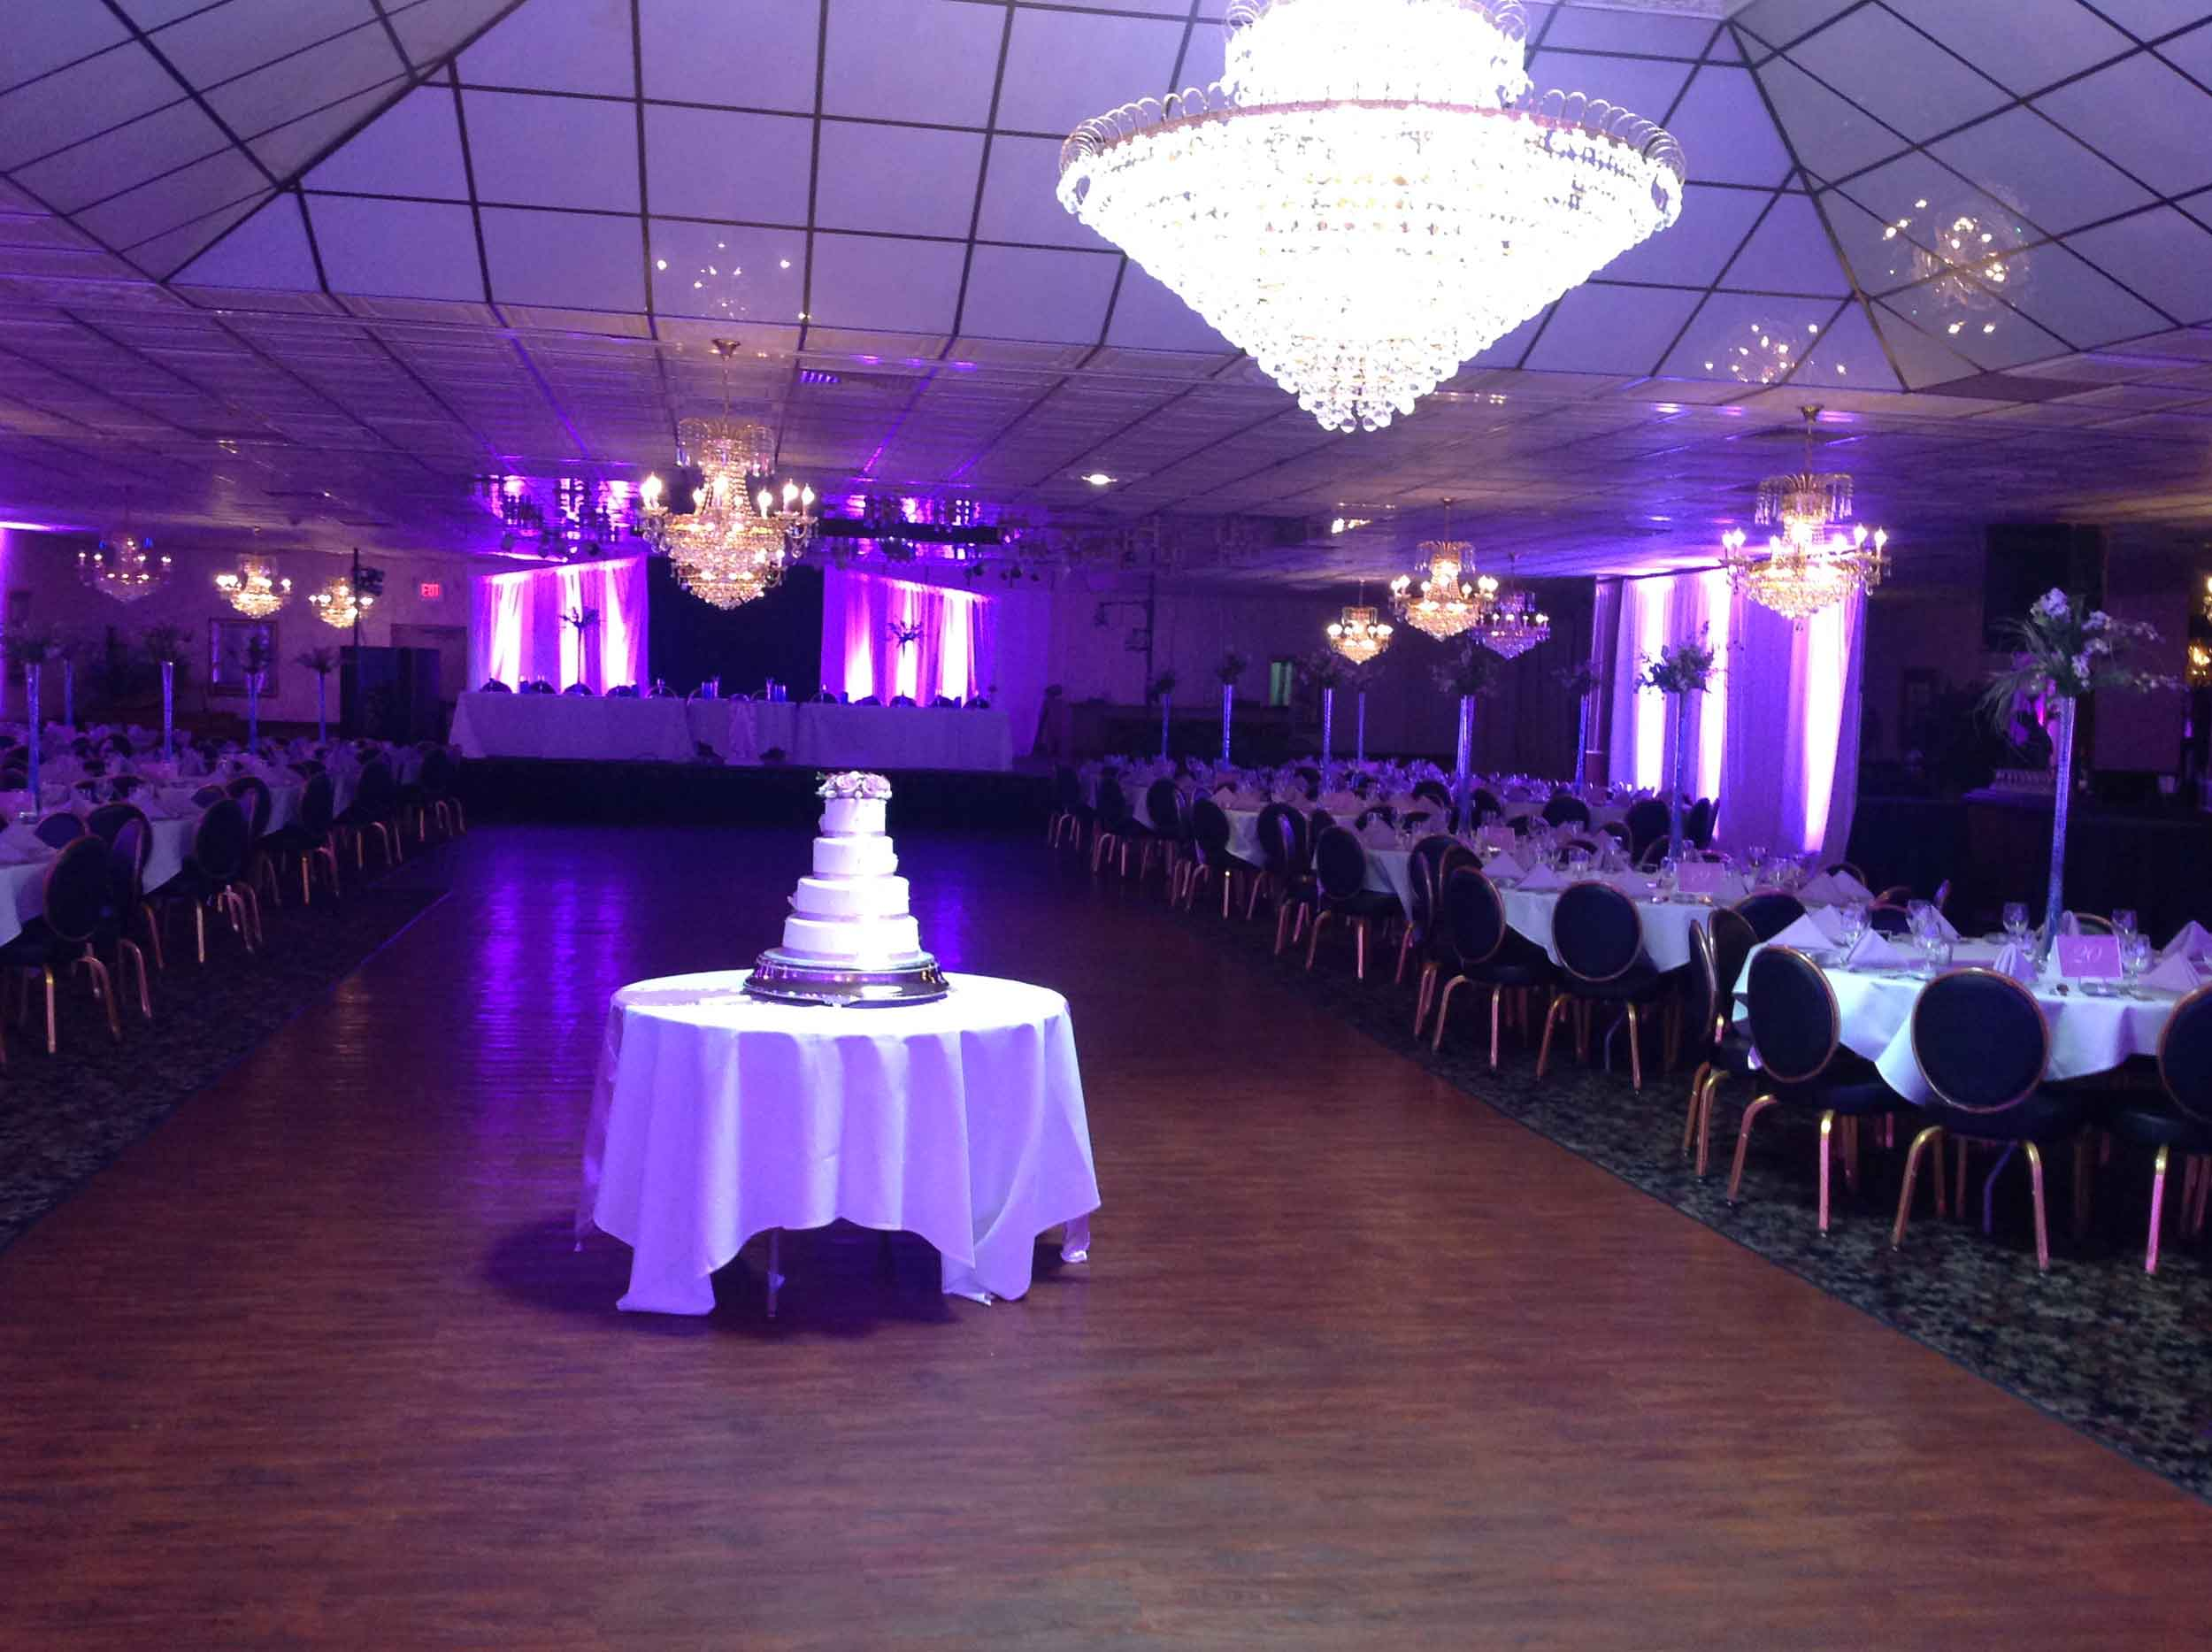 tiff-purple-cake-dancefloor.jpg